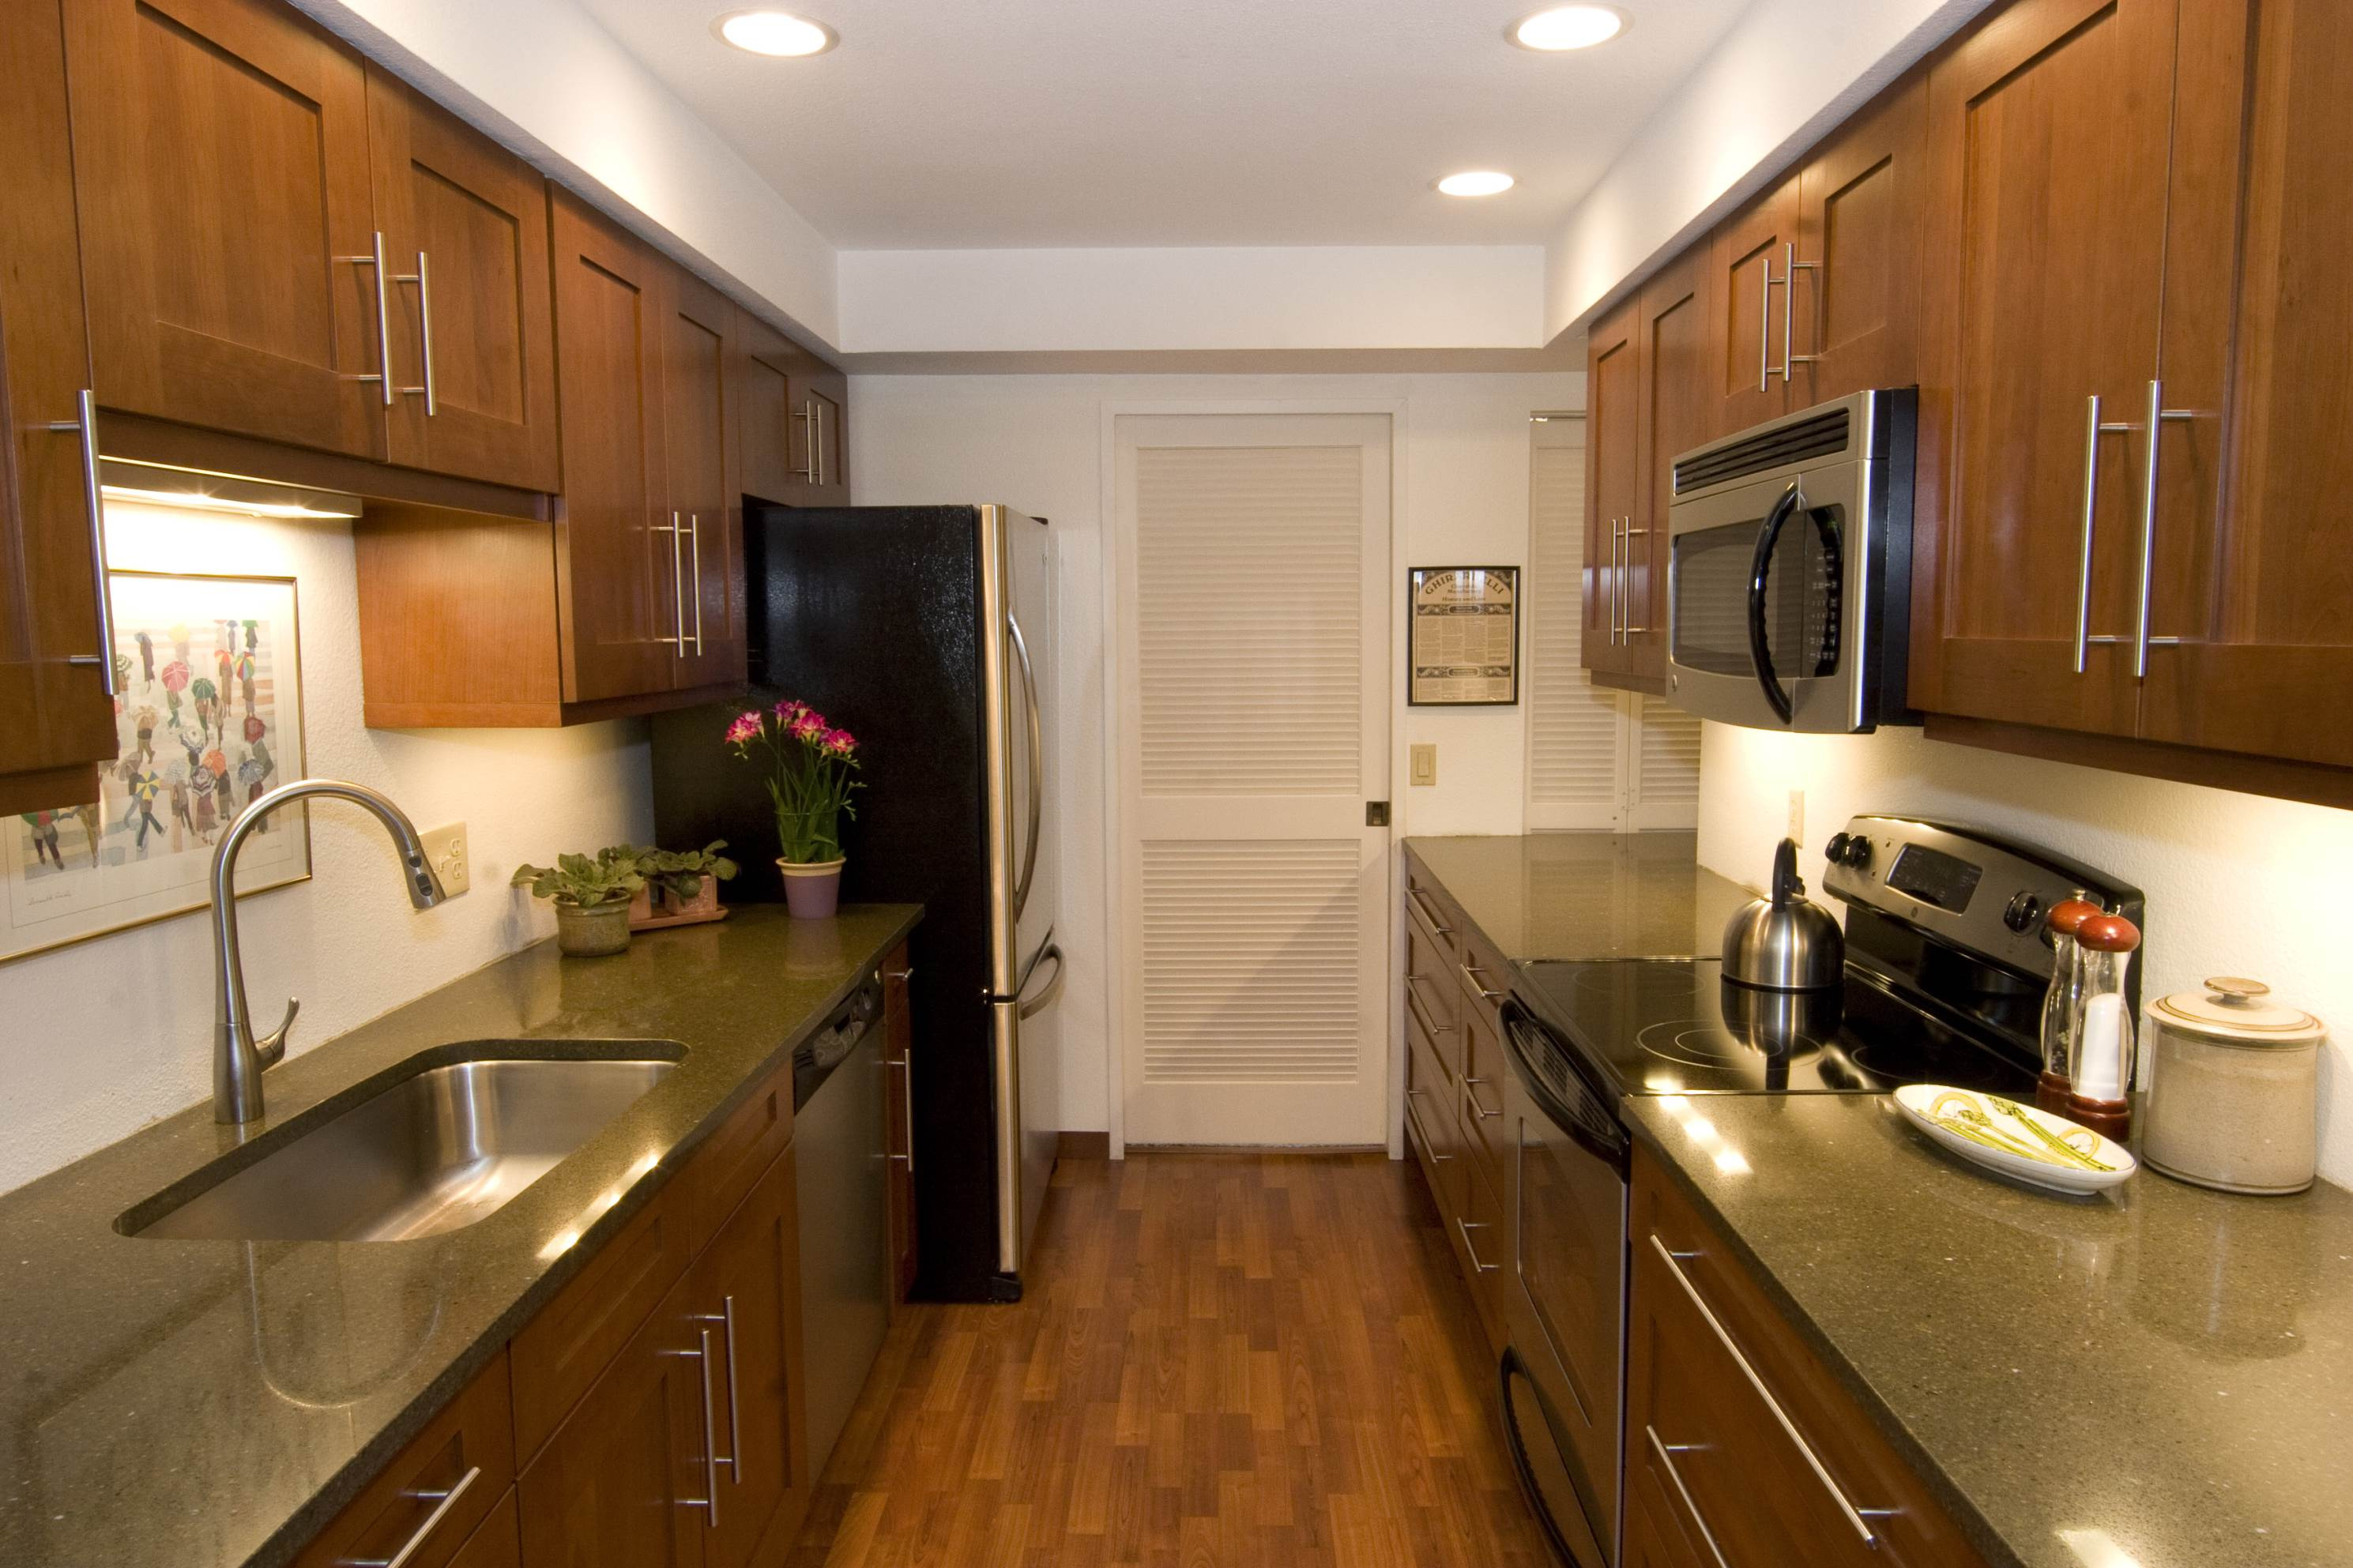 Galley kitchen designs and how to go about implementing one The